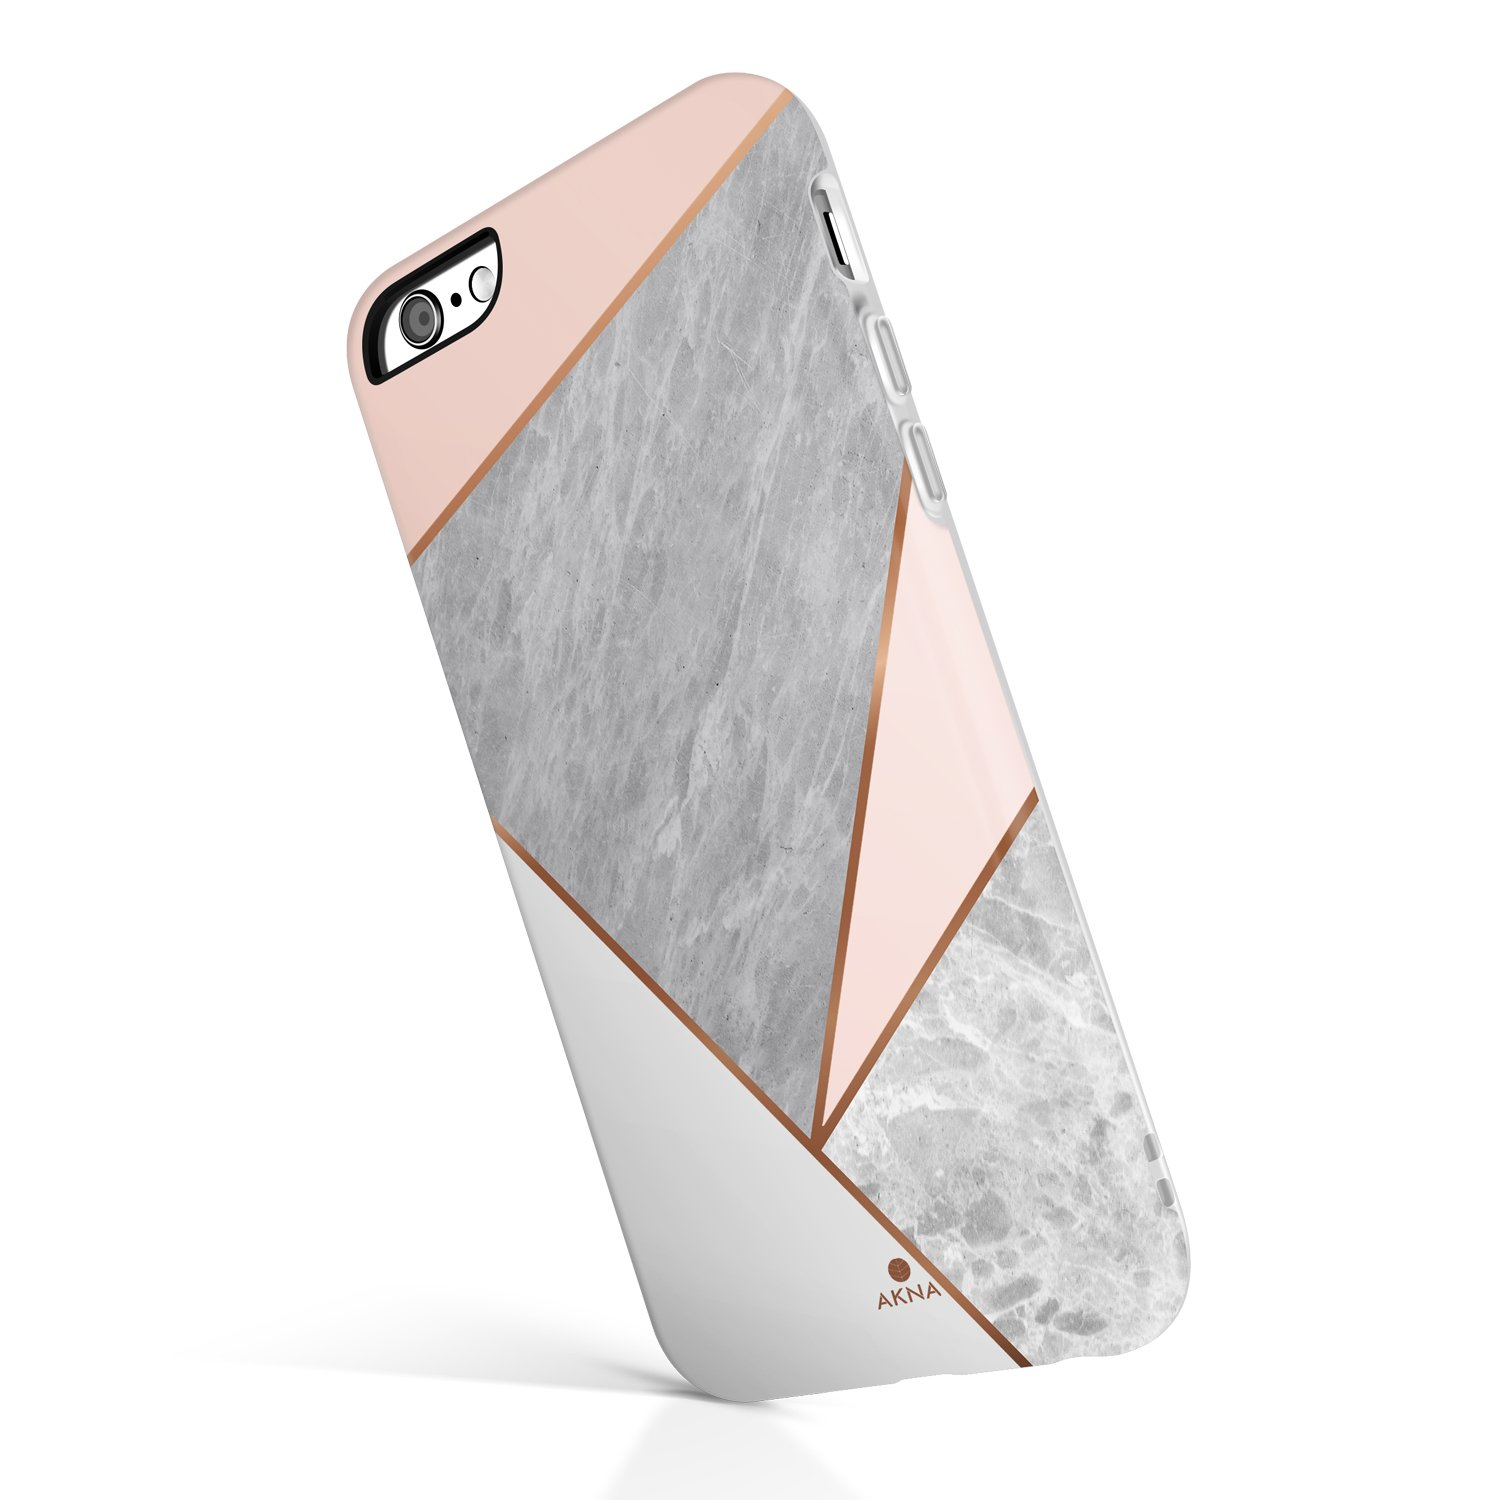 iPhone 6/6s case Marble, Akna Collection High Impact Flexible Silicon Case for Both iPhone 6 & iPhone 6s [Pink Marble Geometric] (920-U.S)